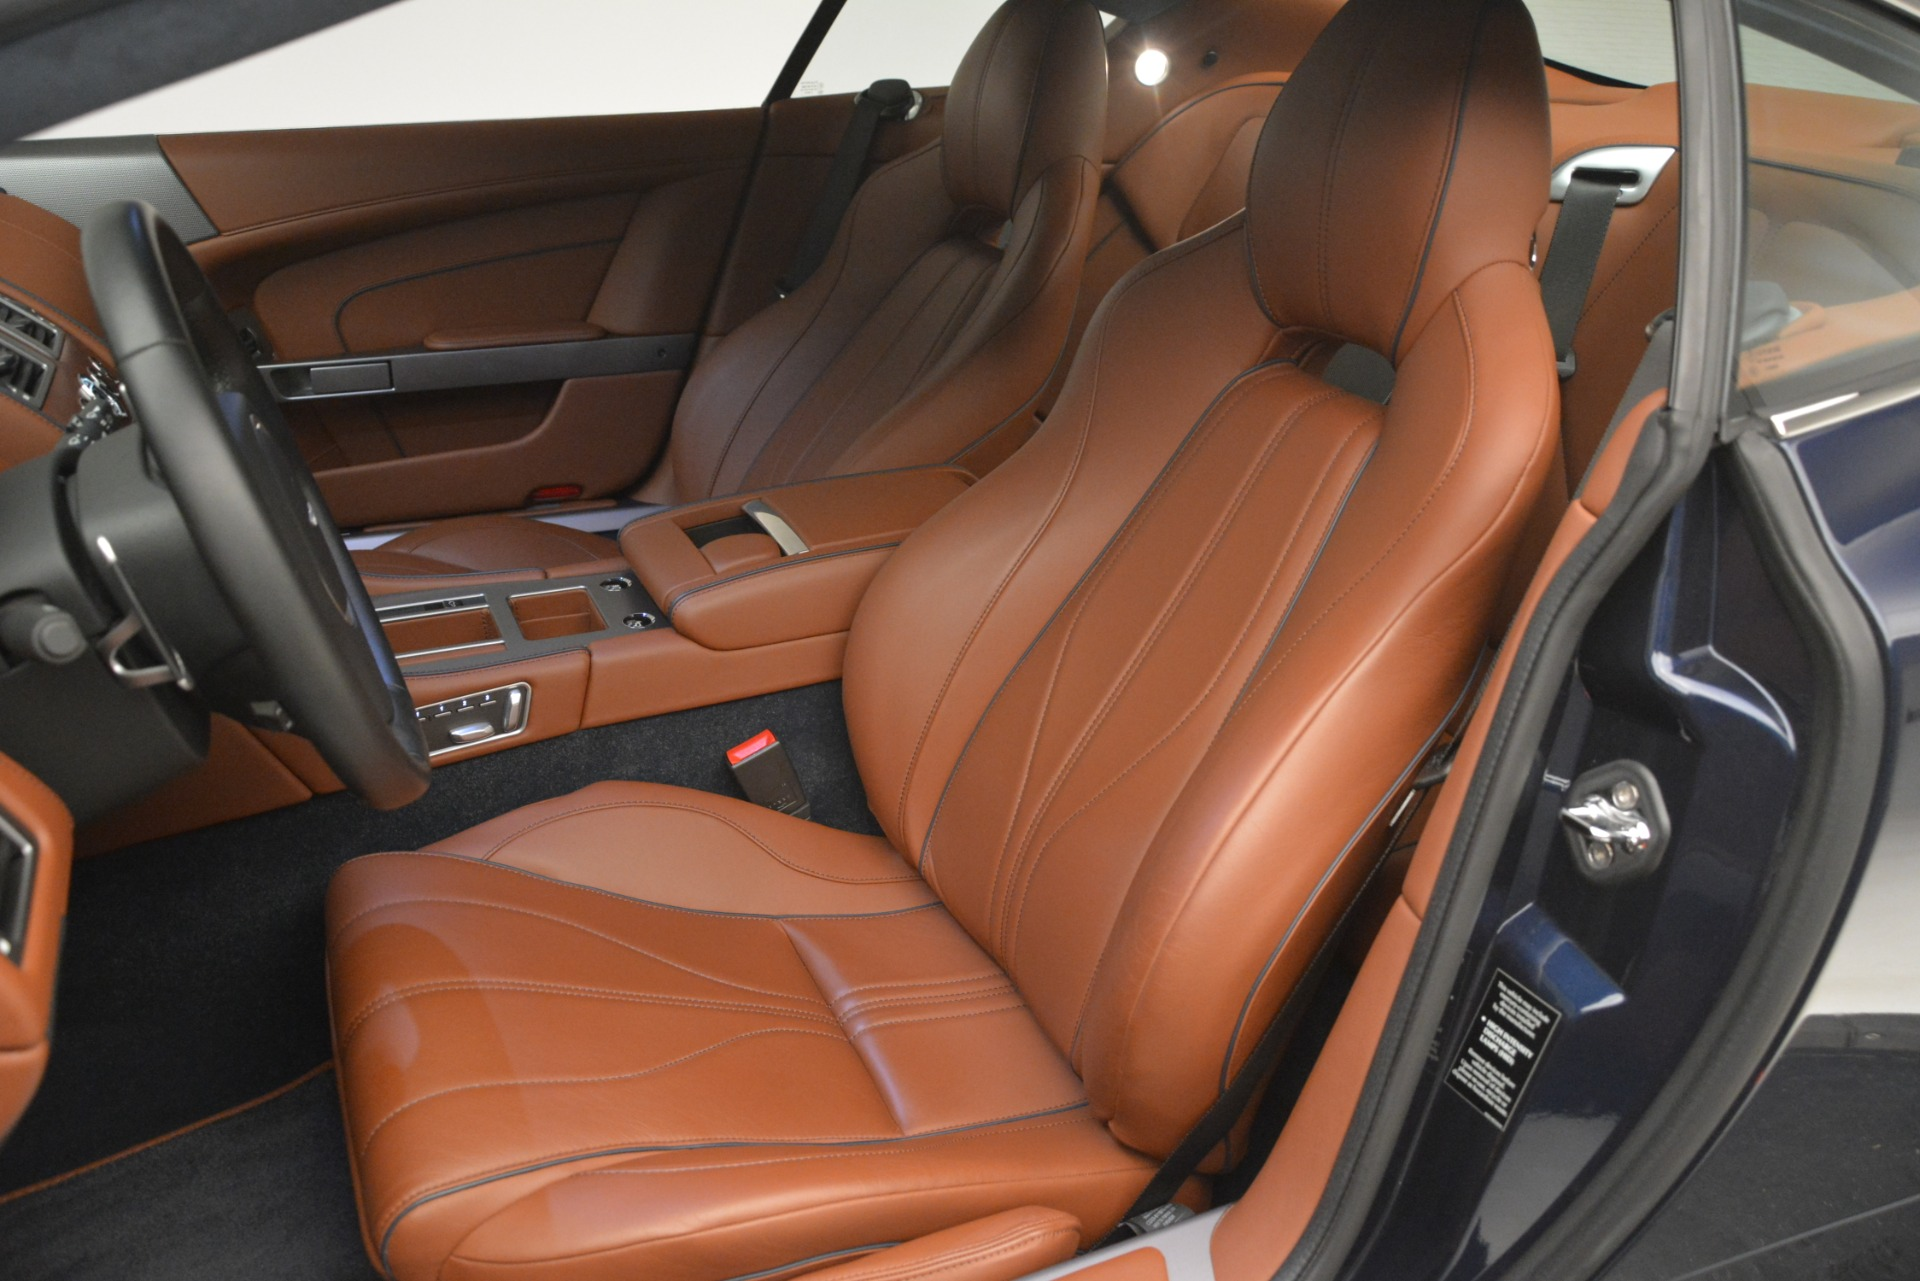 Used 2014 Aston Martin DB9 Coupe For Sale In Greenwich, CT 3010_p16